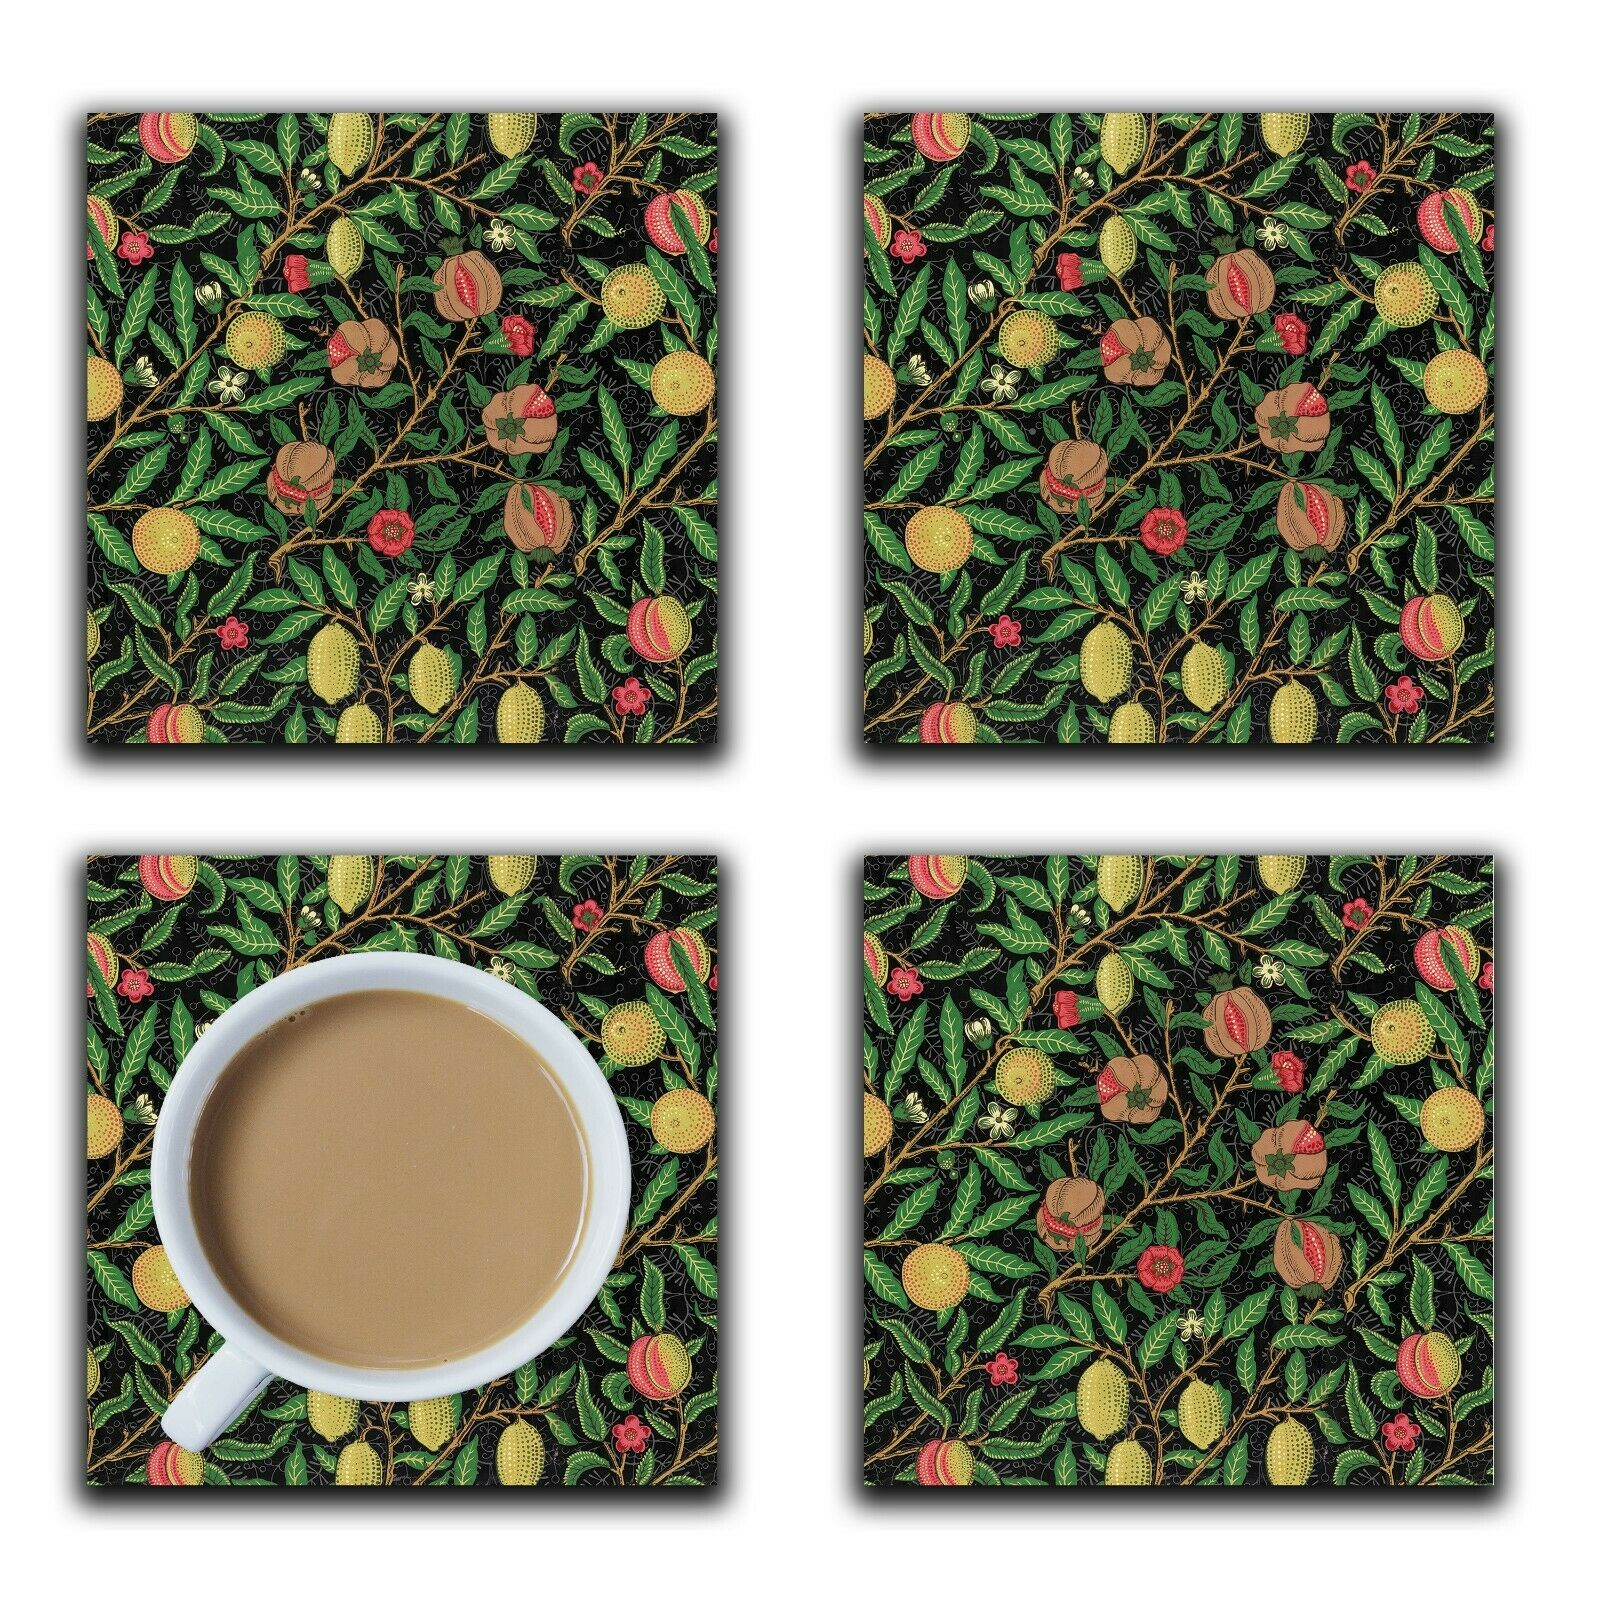 Embossi Printed William Morris 1862 Fruits, choose wood or ceramic tile, set of 4